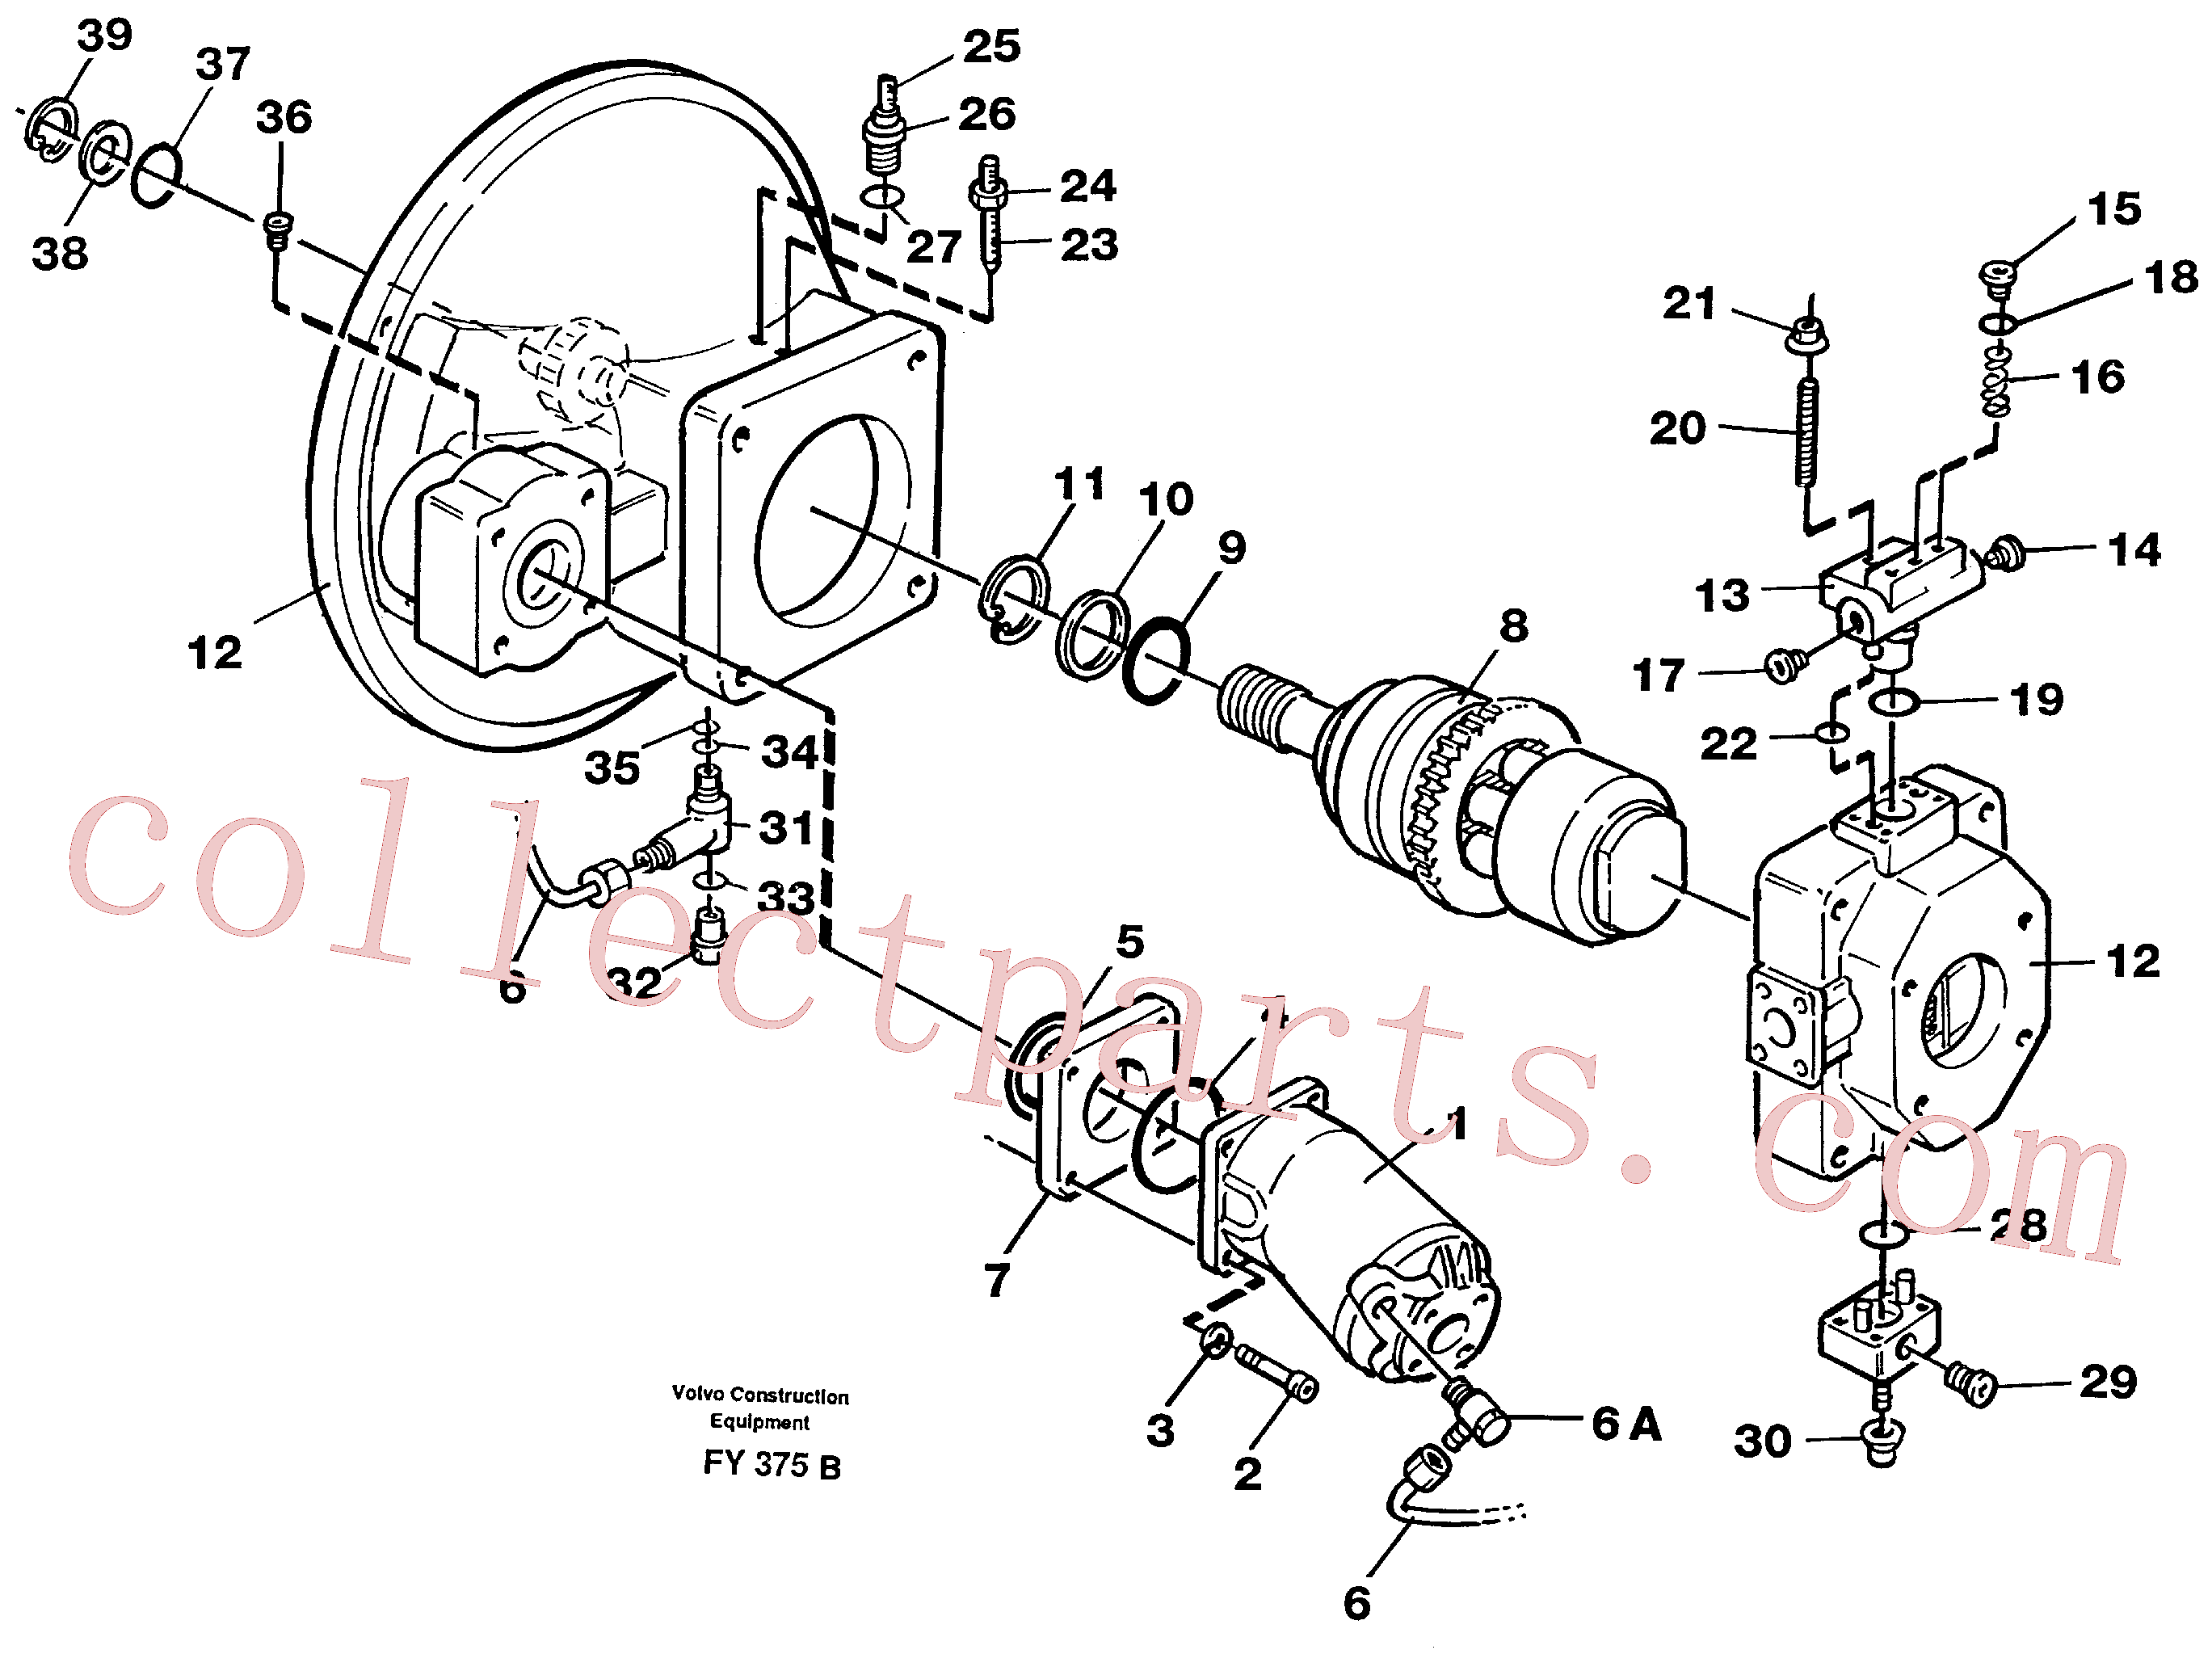 VOE11992751 for Volvo Pump gear box(FY375B assembly)